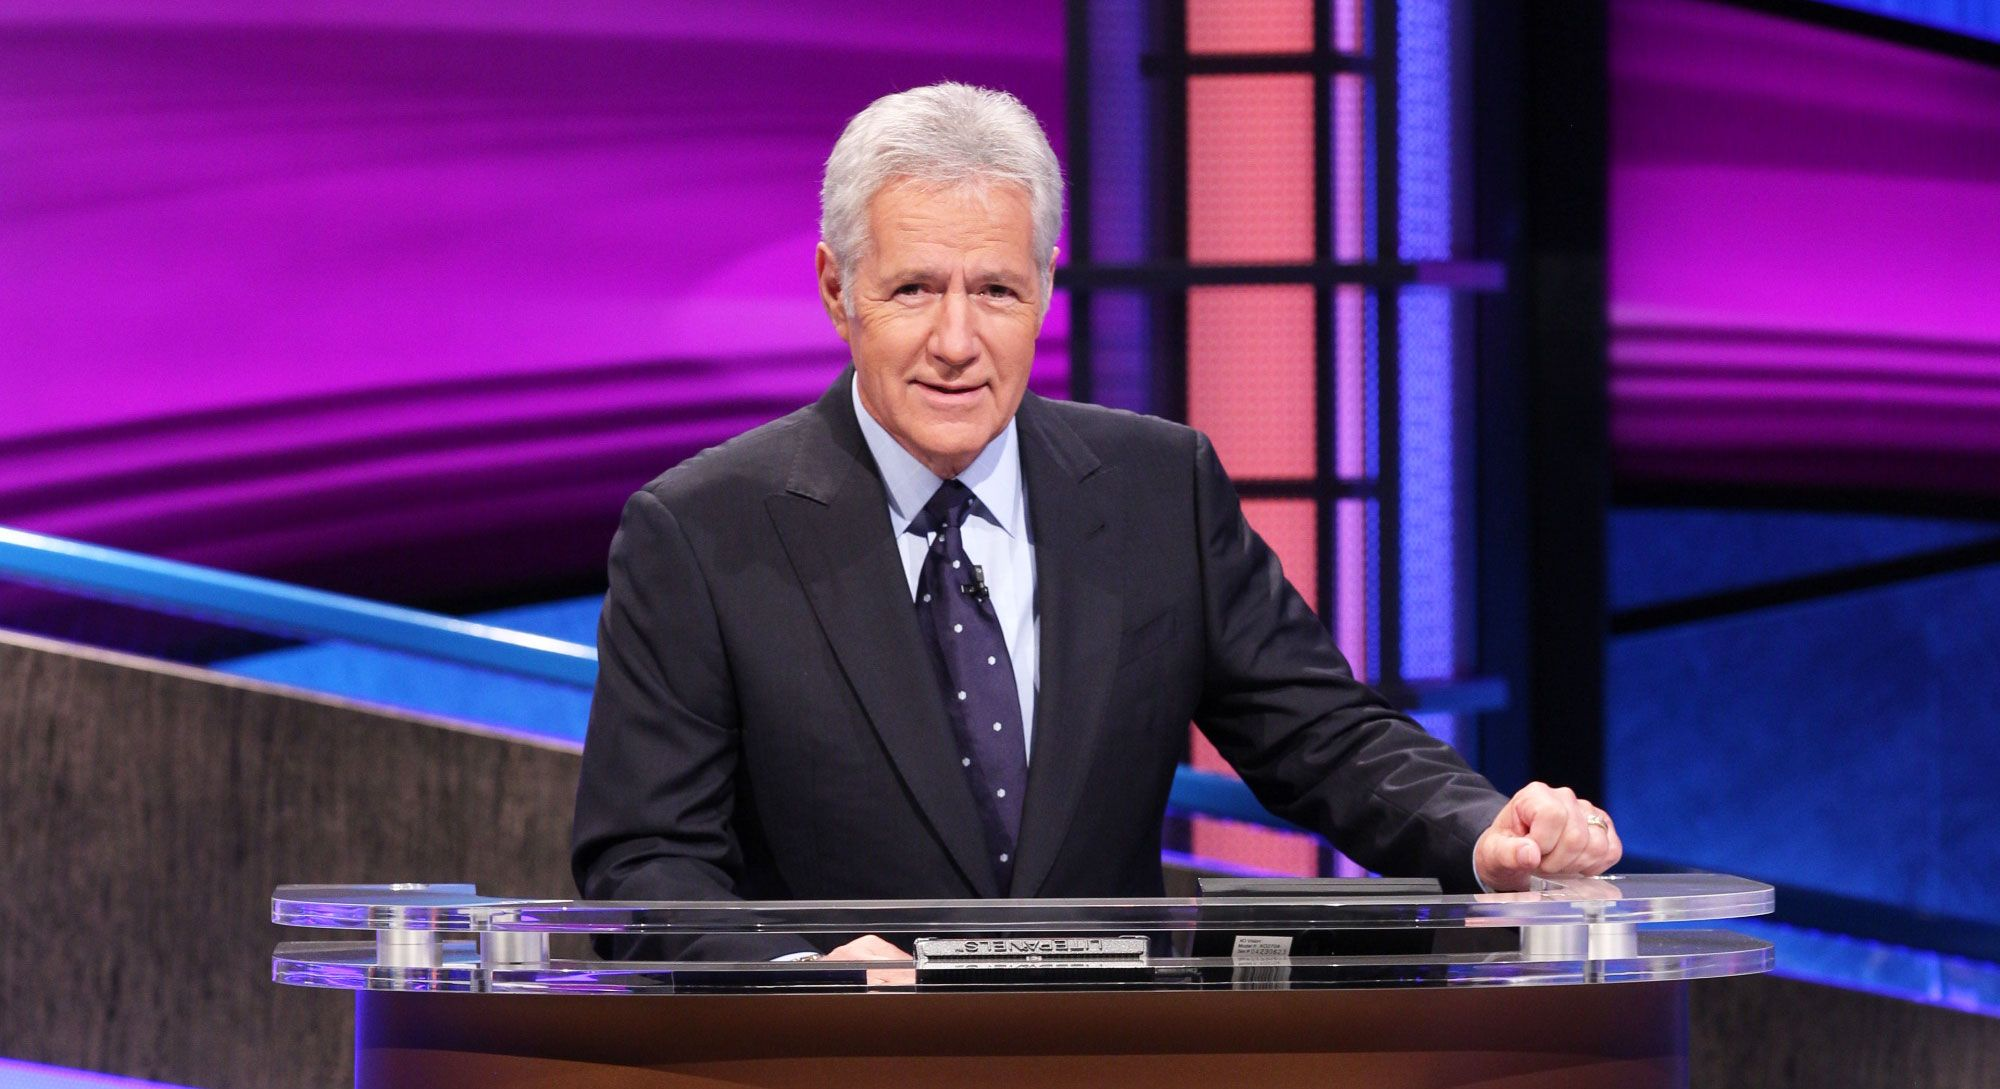 Alex Trebek Makes a Head-Turning Update About His Cancer Diagnosis